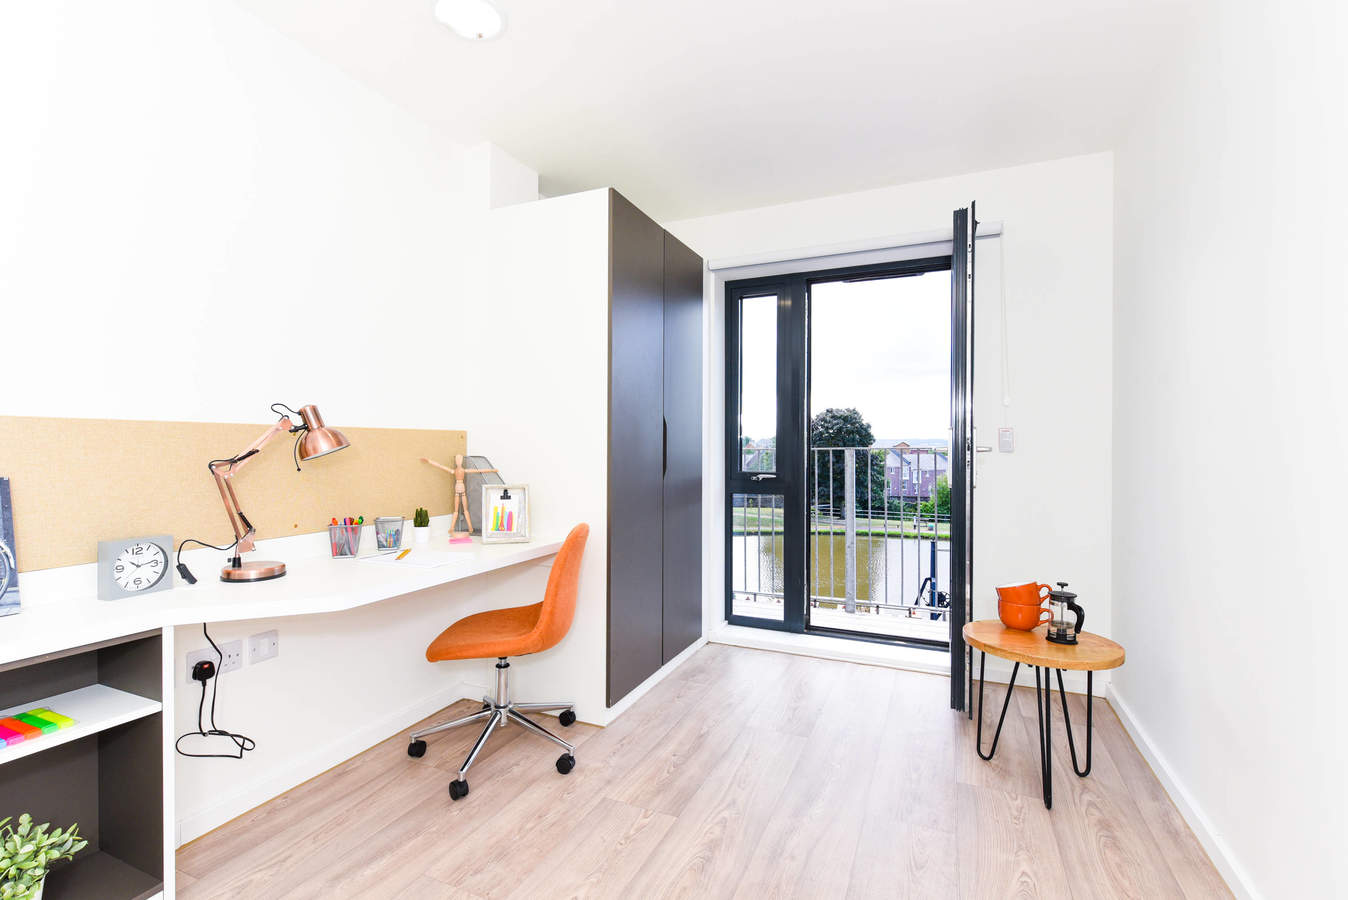 Chester_-_towpath_-_ensuite_balcony-3_converted